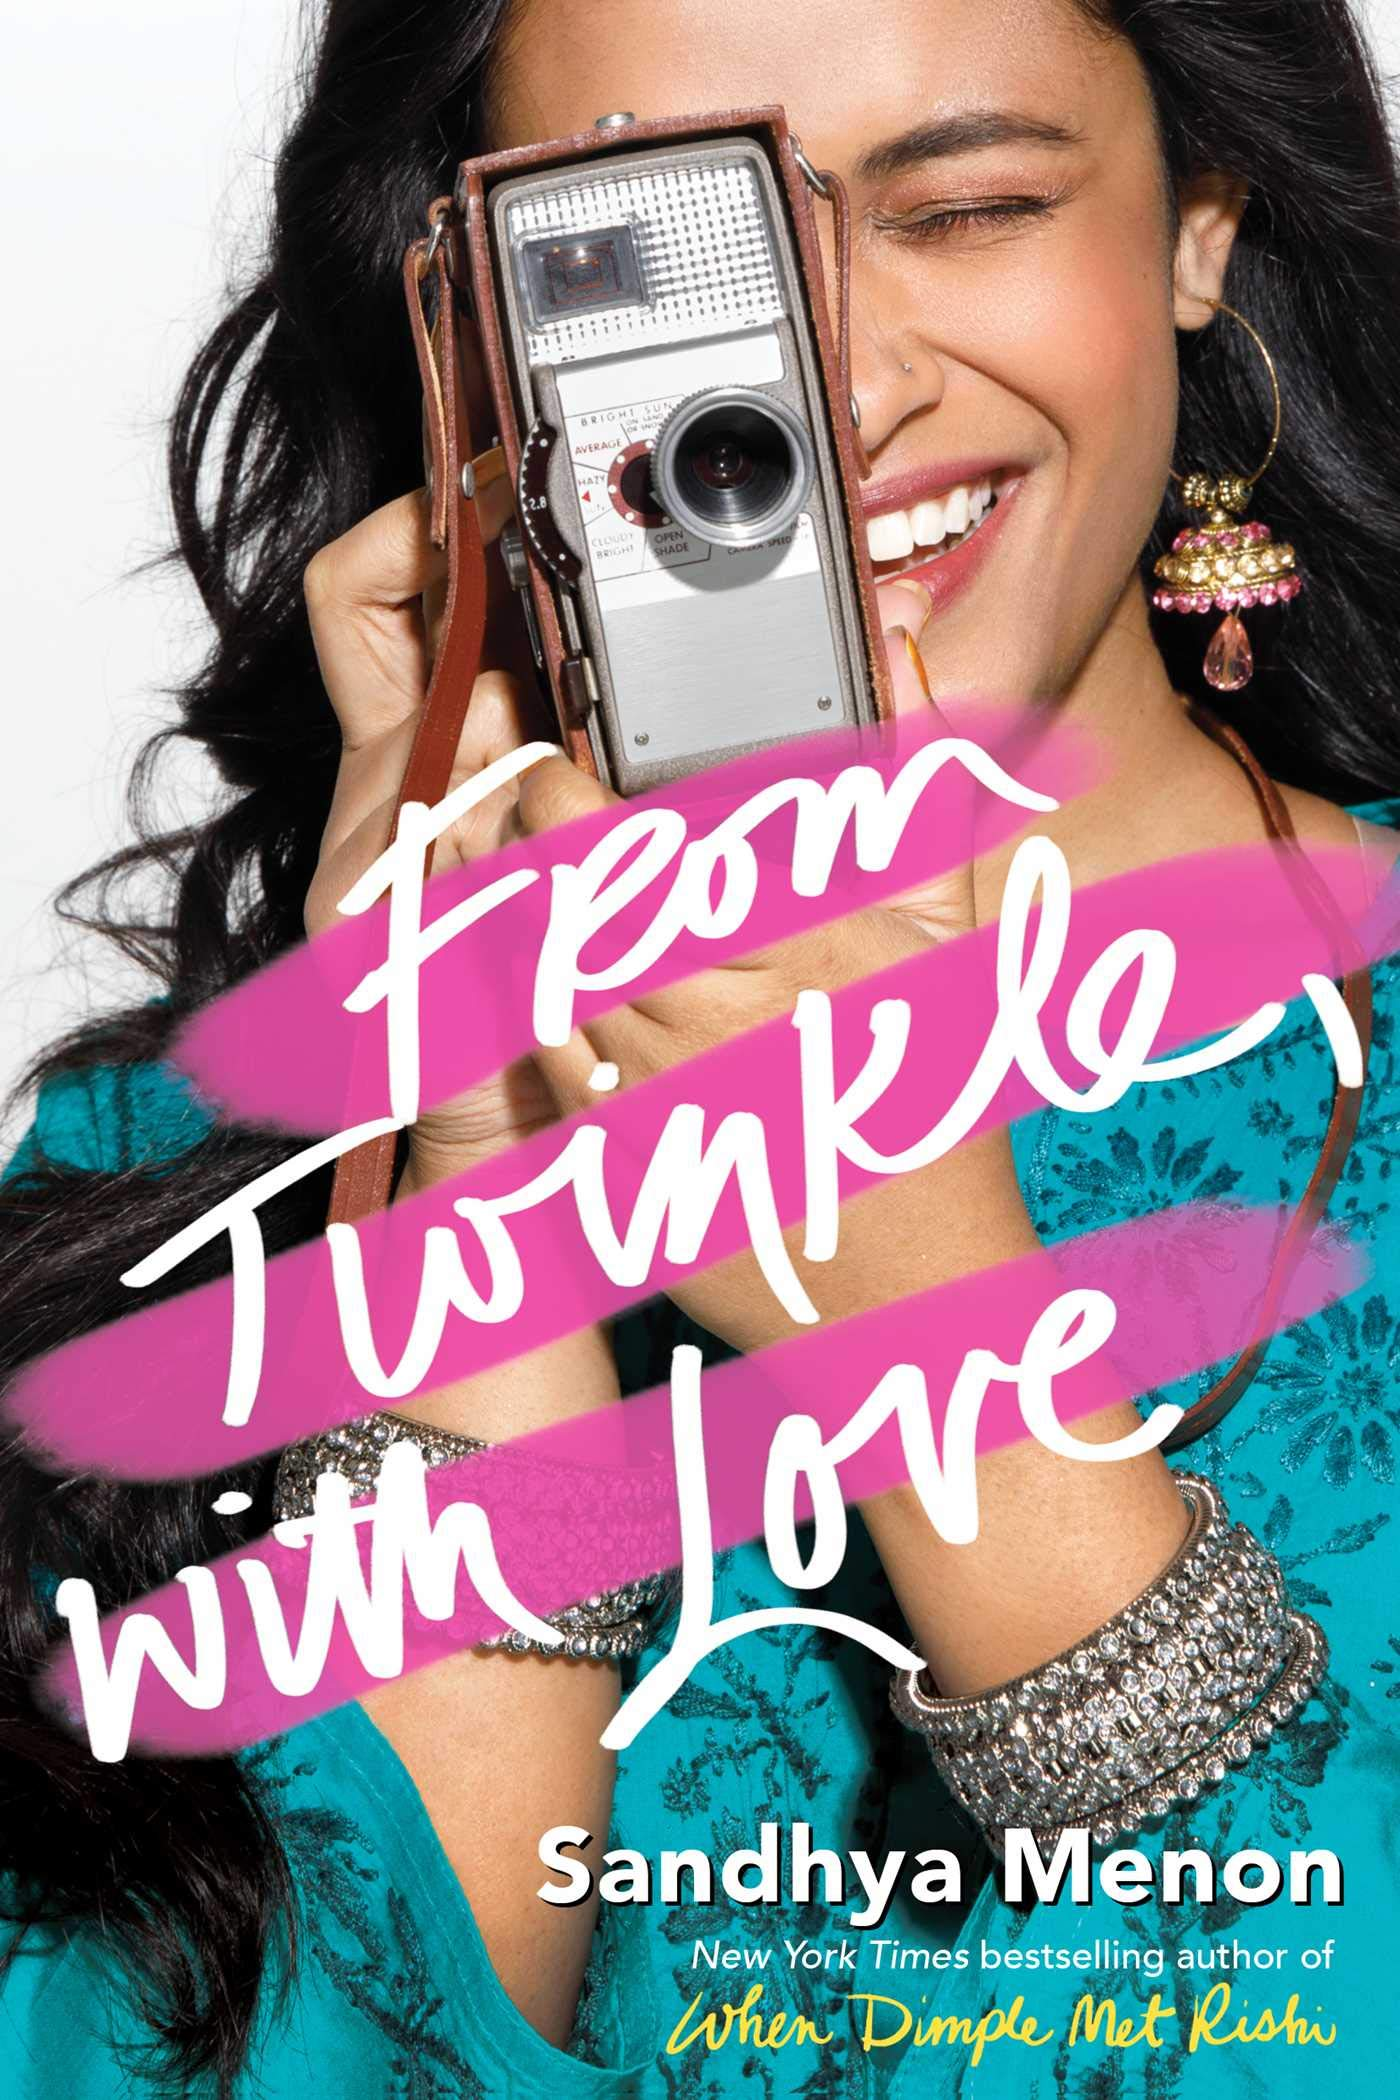 Amazon.com: From Twinkle, with Love (9781481495417): Sandhya Menon ...